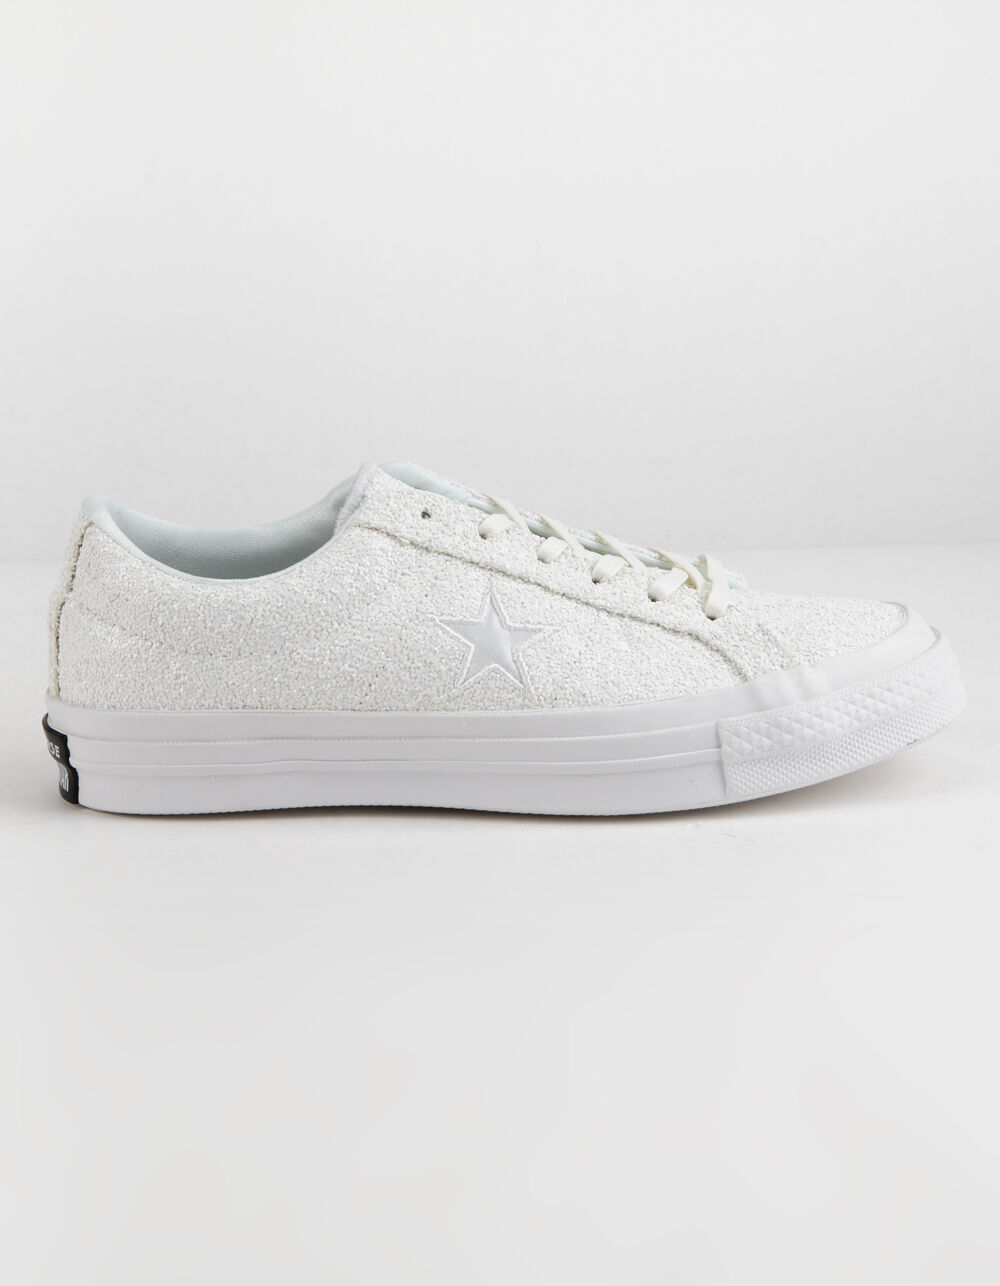 CONVERSE ONE STAR OX GLITTER WHITE SHOES